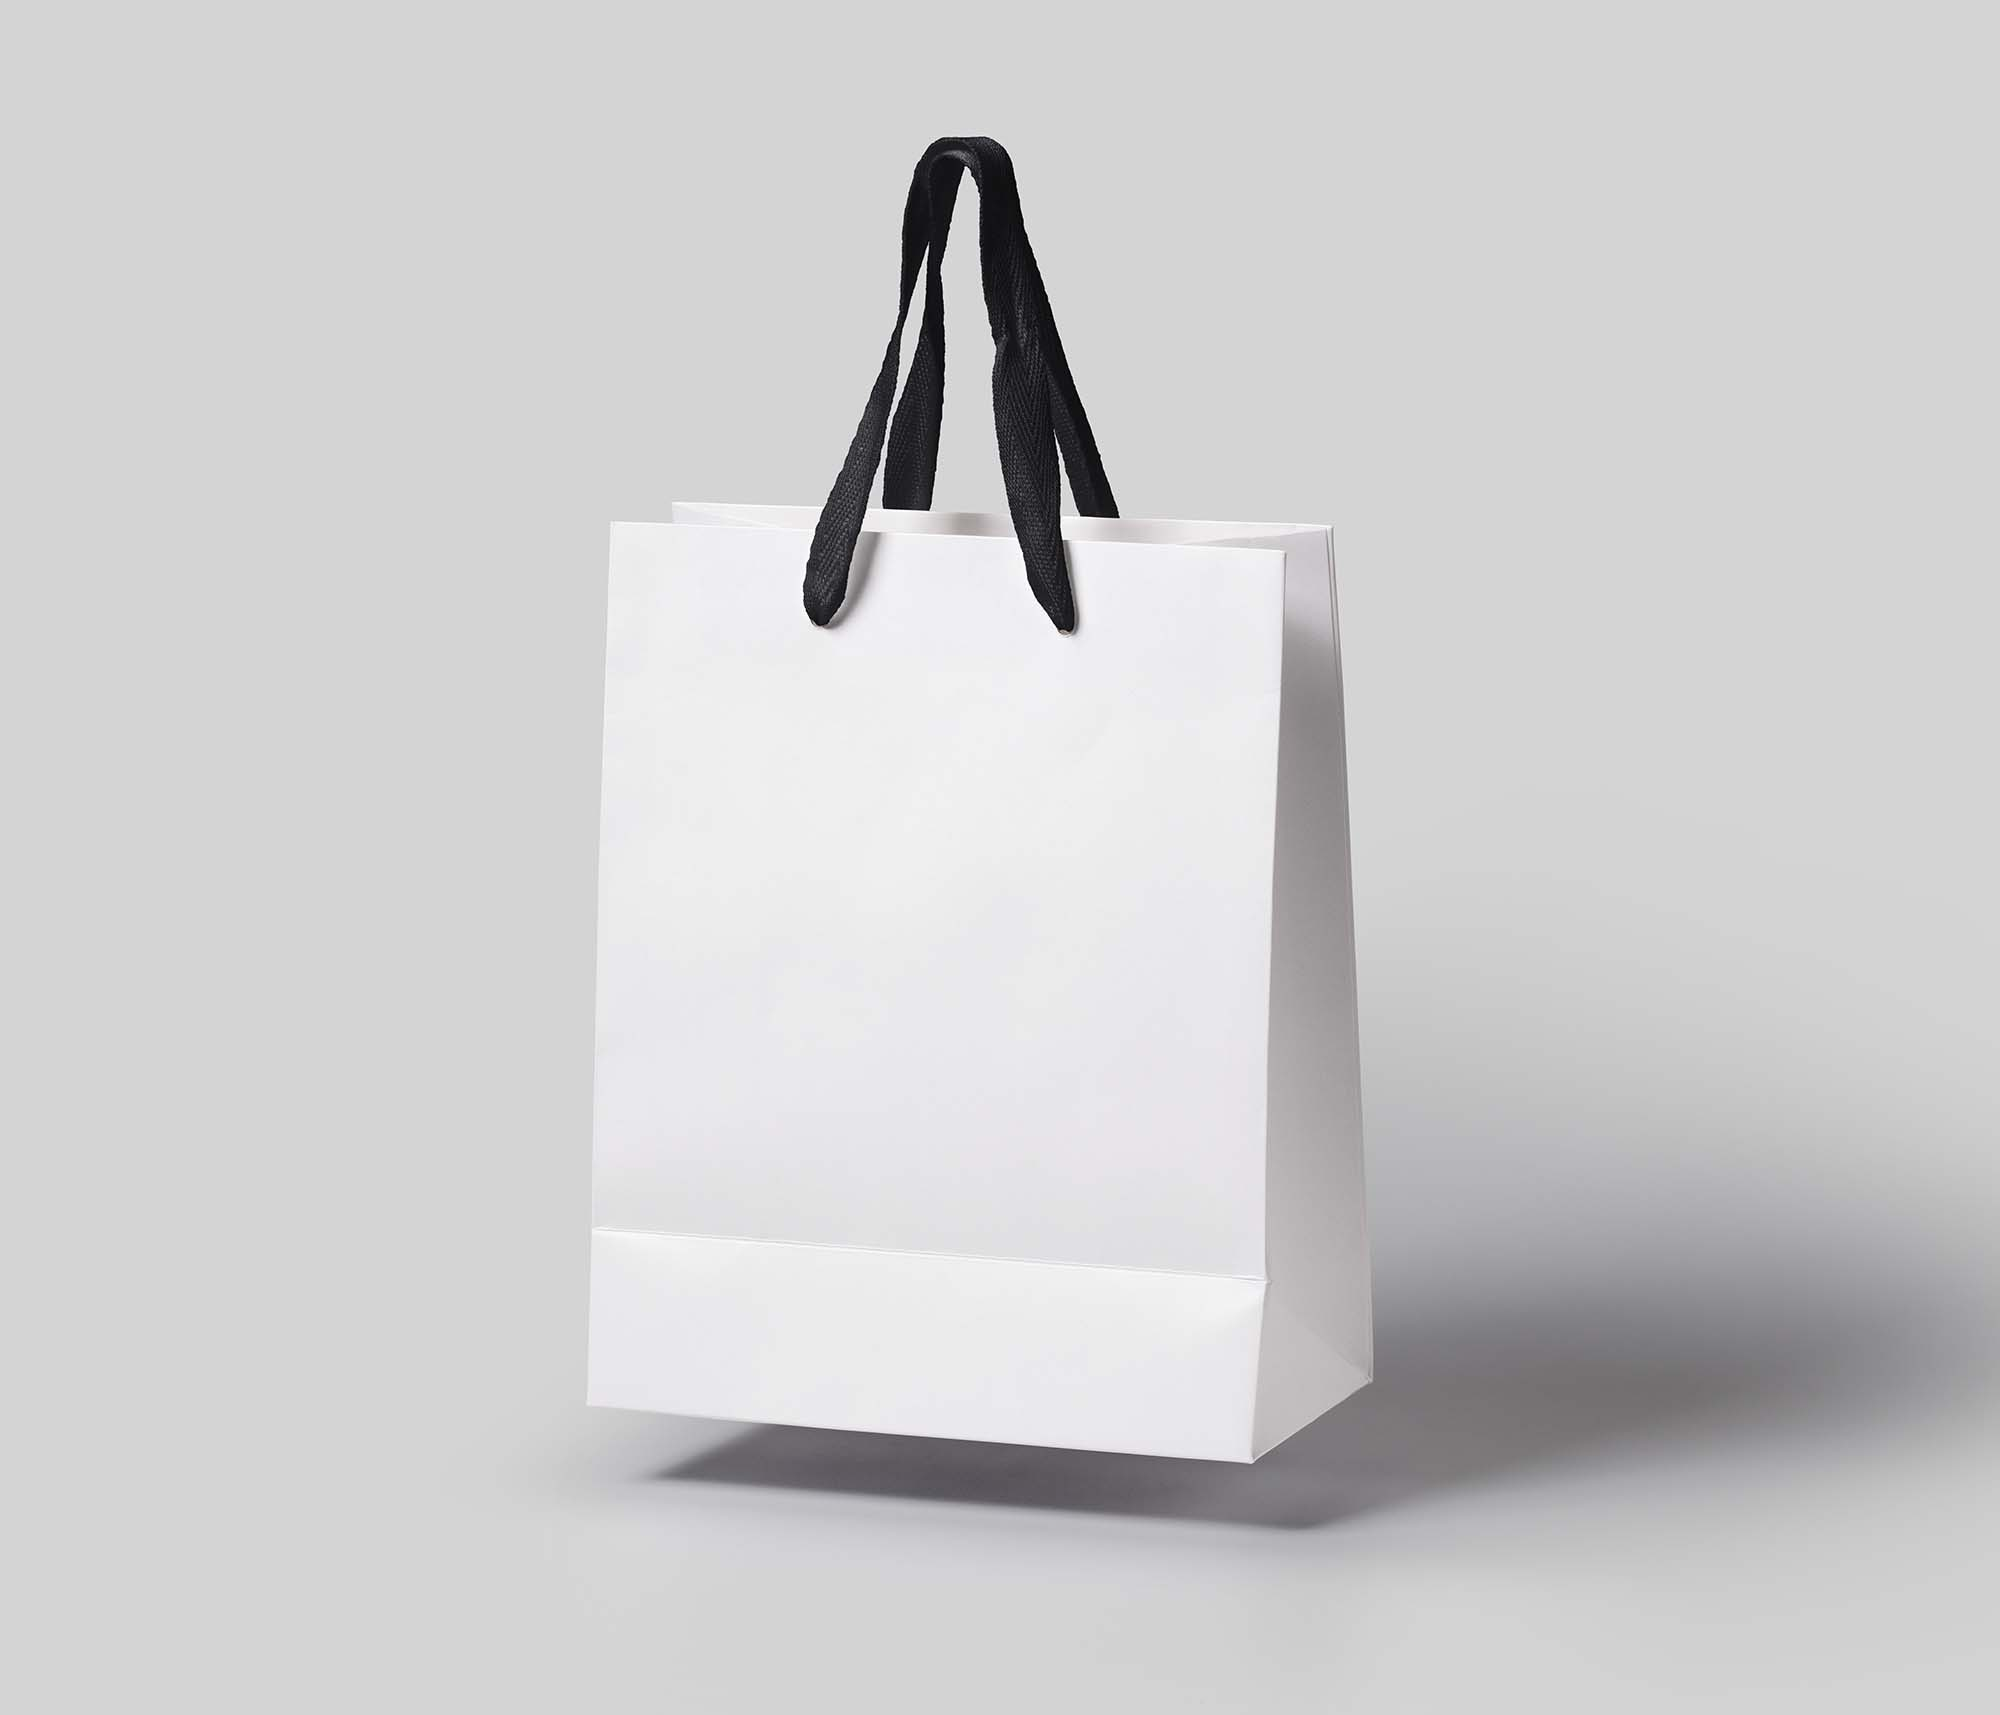 Gravity Shopping Bag Mockup